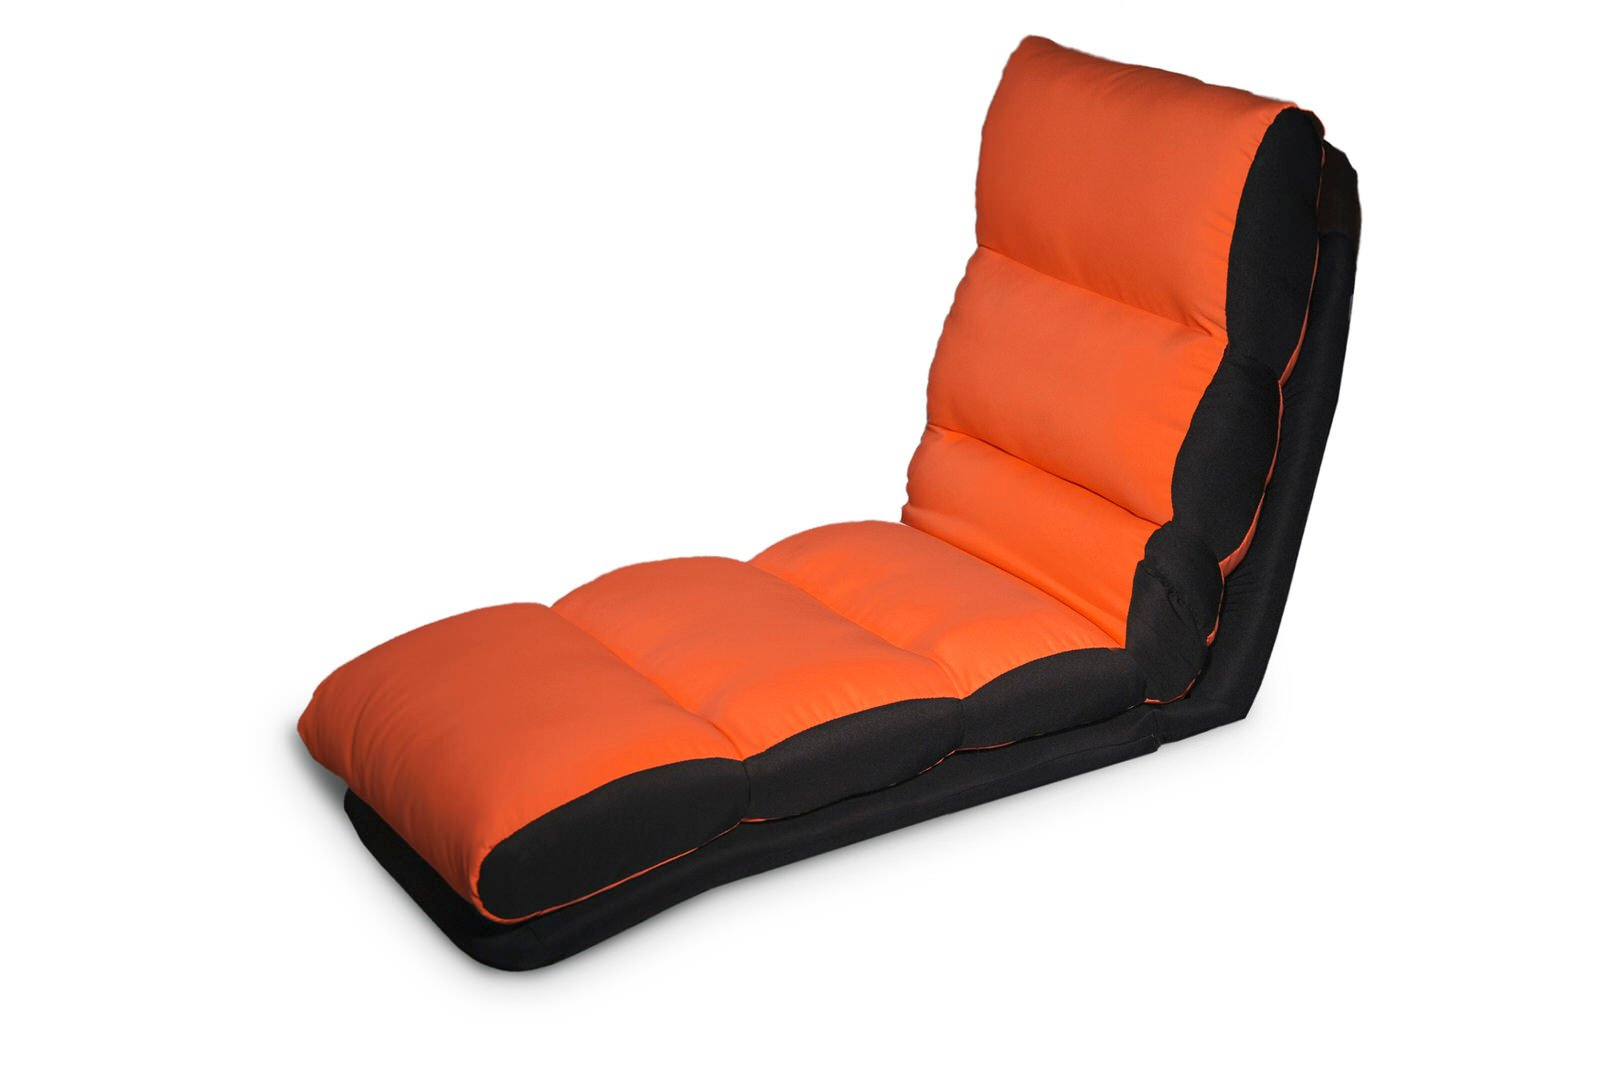 Turbo lounger convertible chair bed orange by serta for Chaise lounge convertible bed